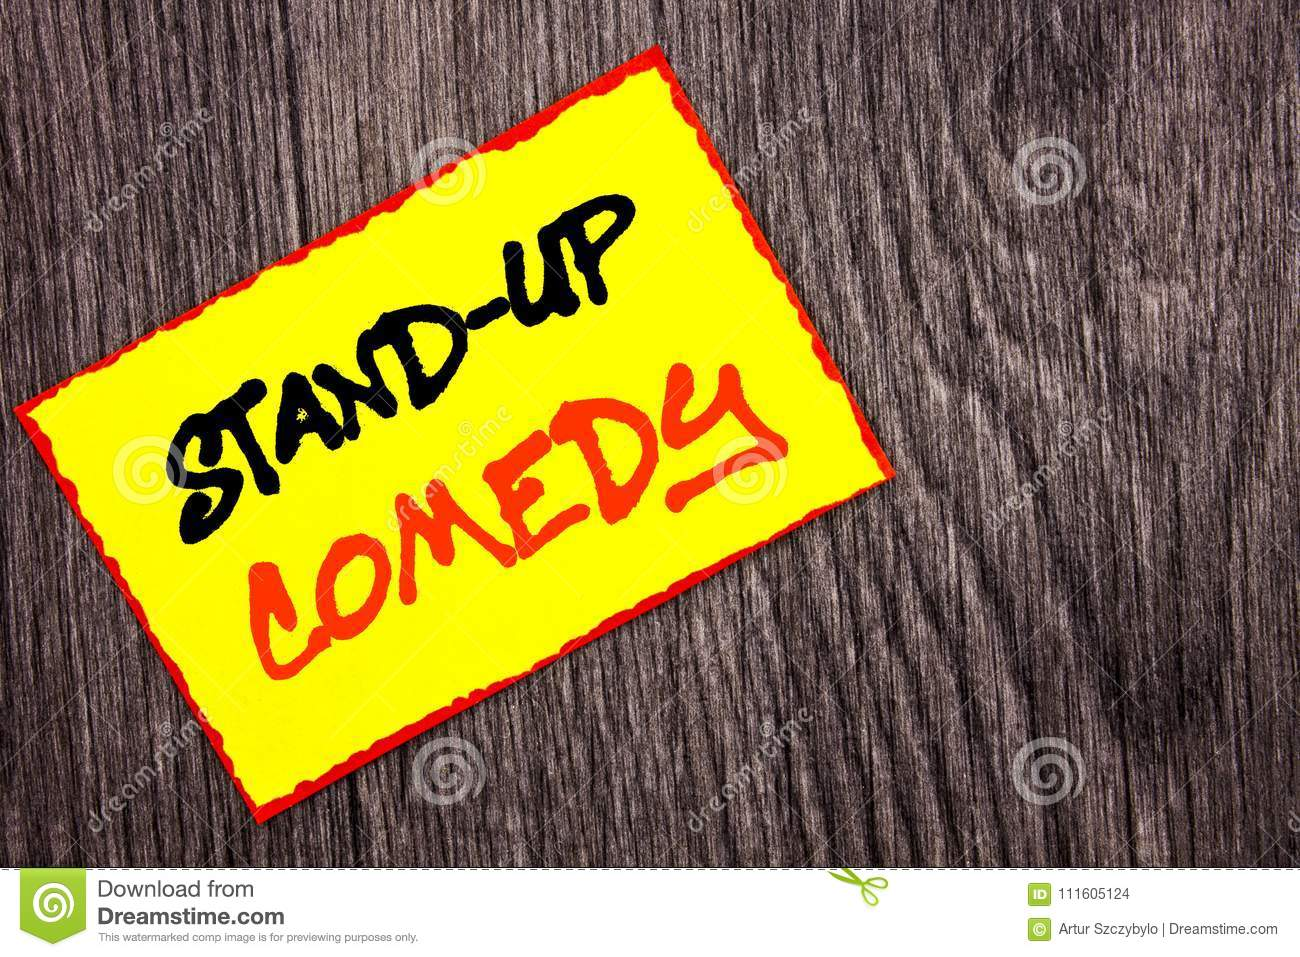 Conceptual hand writing text showing Stand Up Comedy. Concept meaning Entertainment Club Fun Show Comedian Night written on Yellow